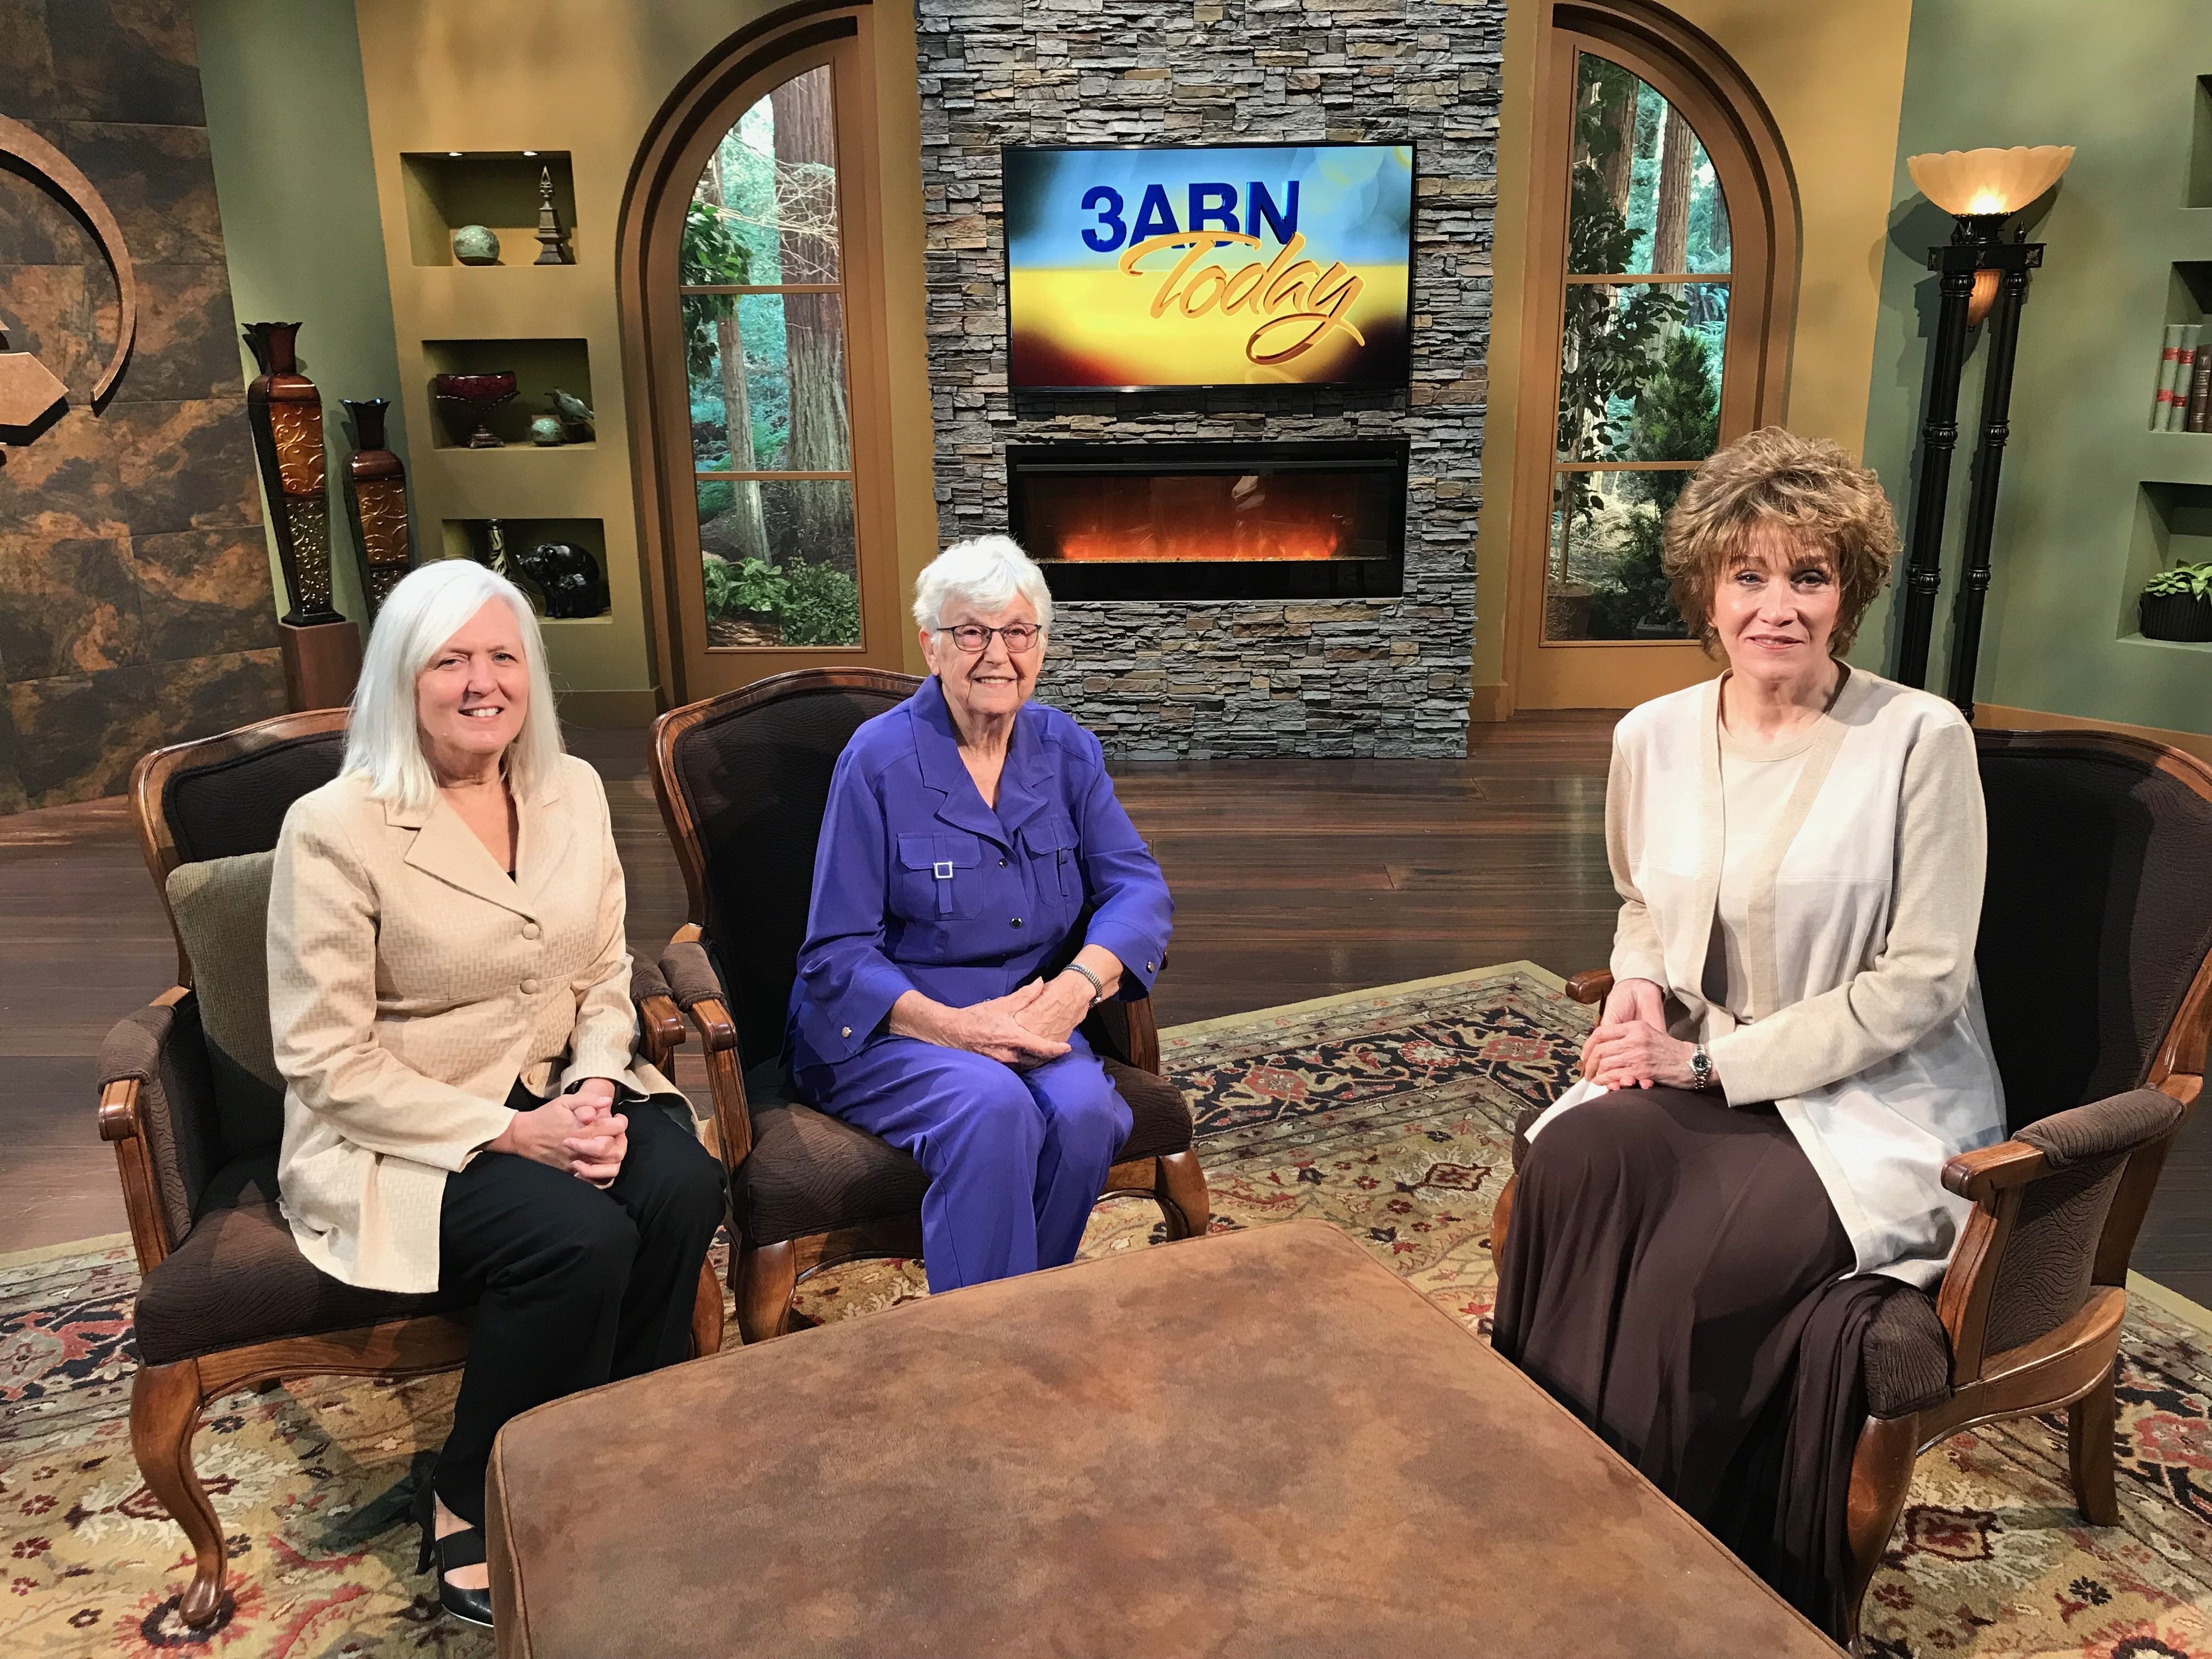 IMVO Is Featured On 3ABN Today